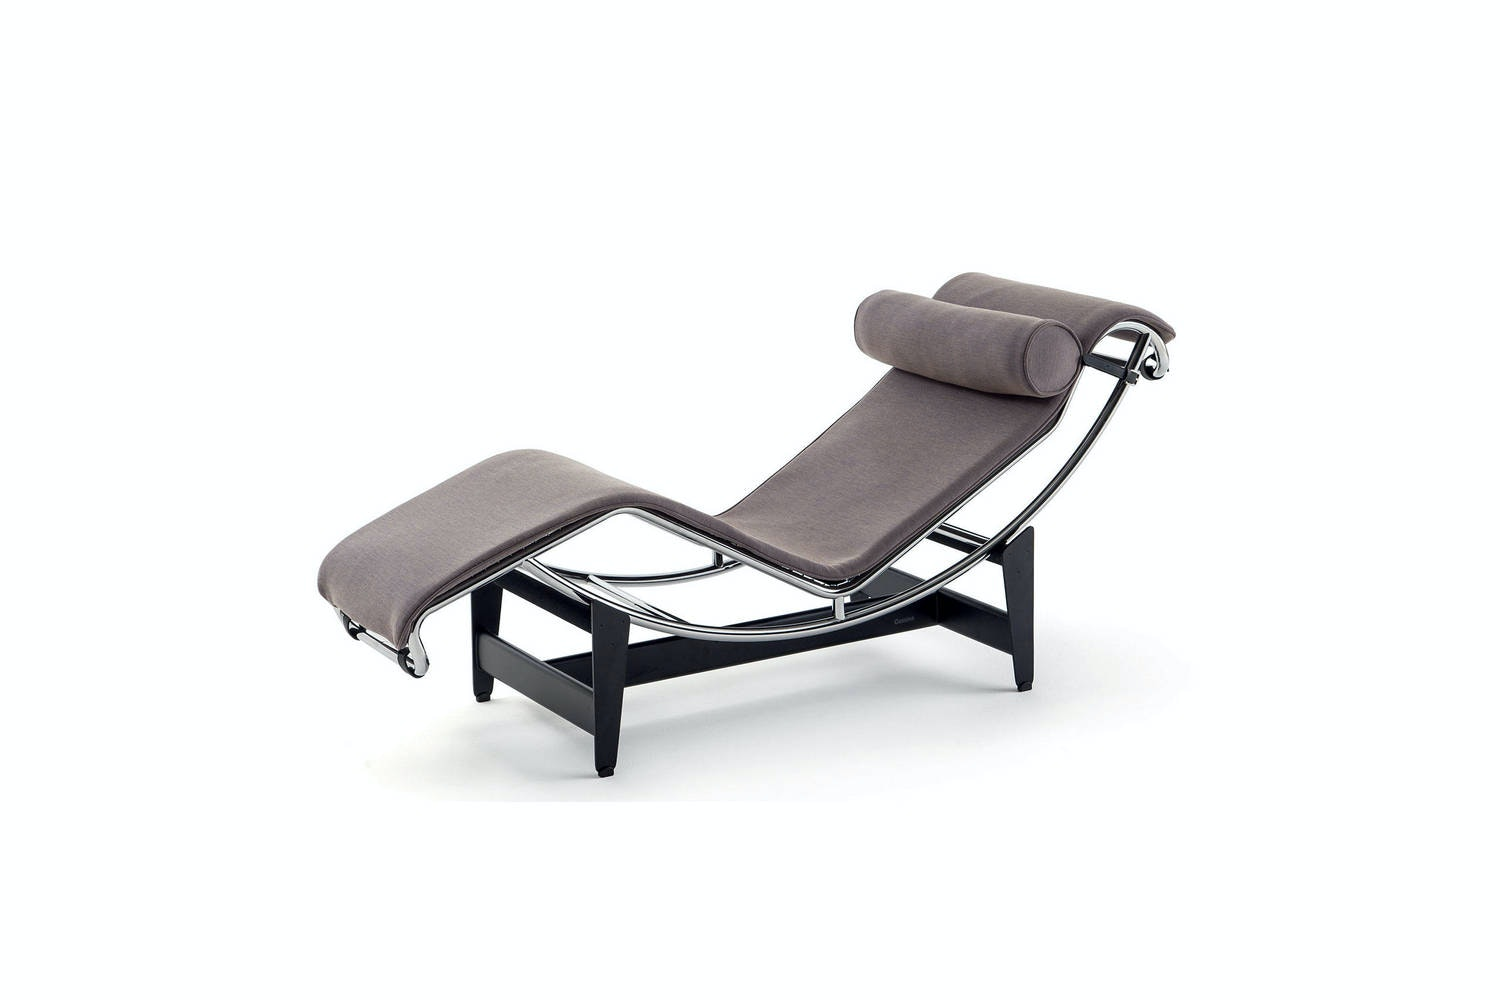 LC4 Chaise Longue 2017 by Le Corbusier, Pierre Jeanneret, Charlotte Perriand for Cassina